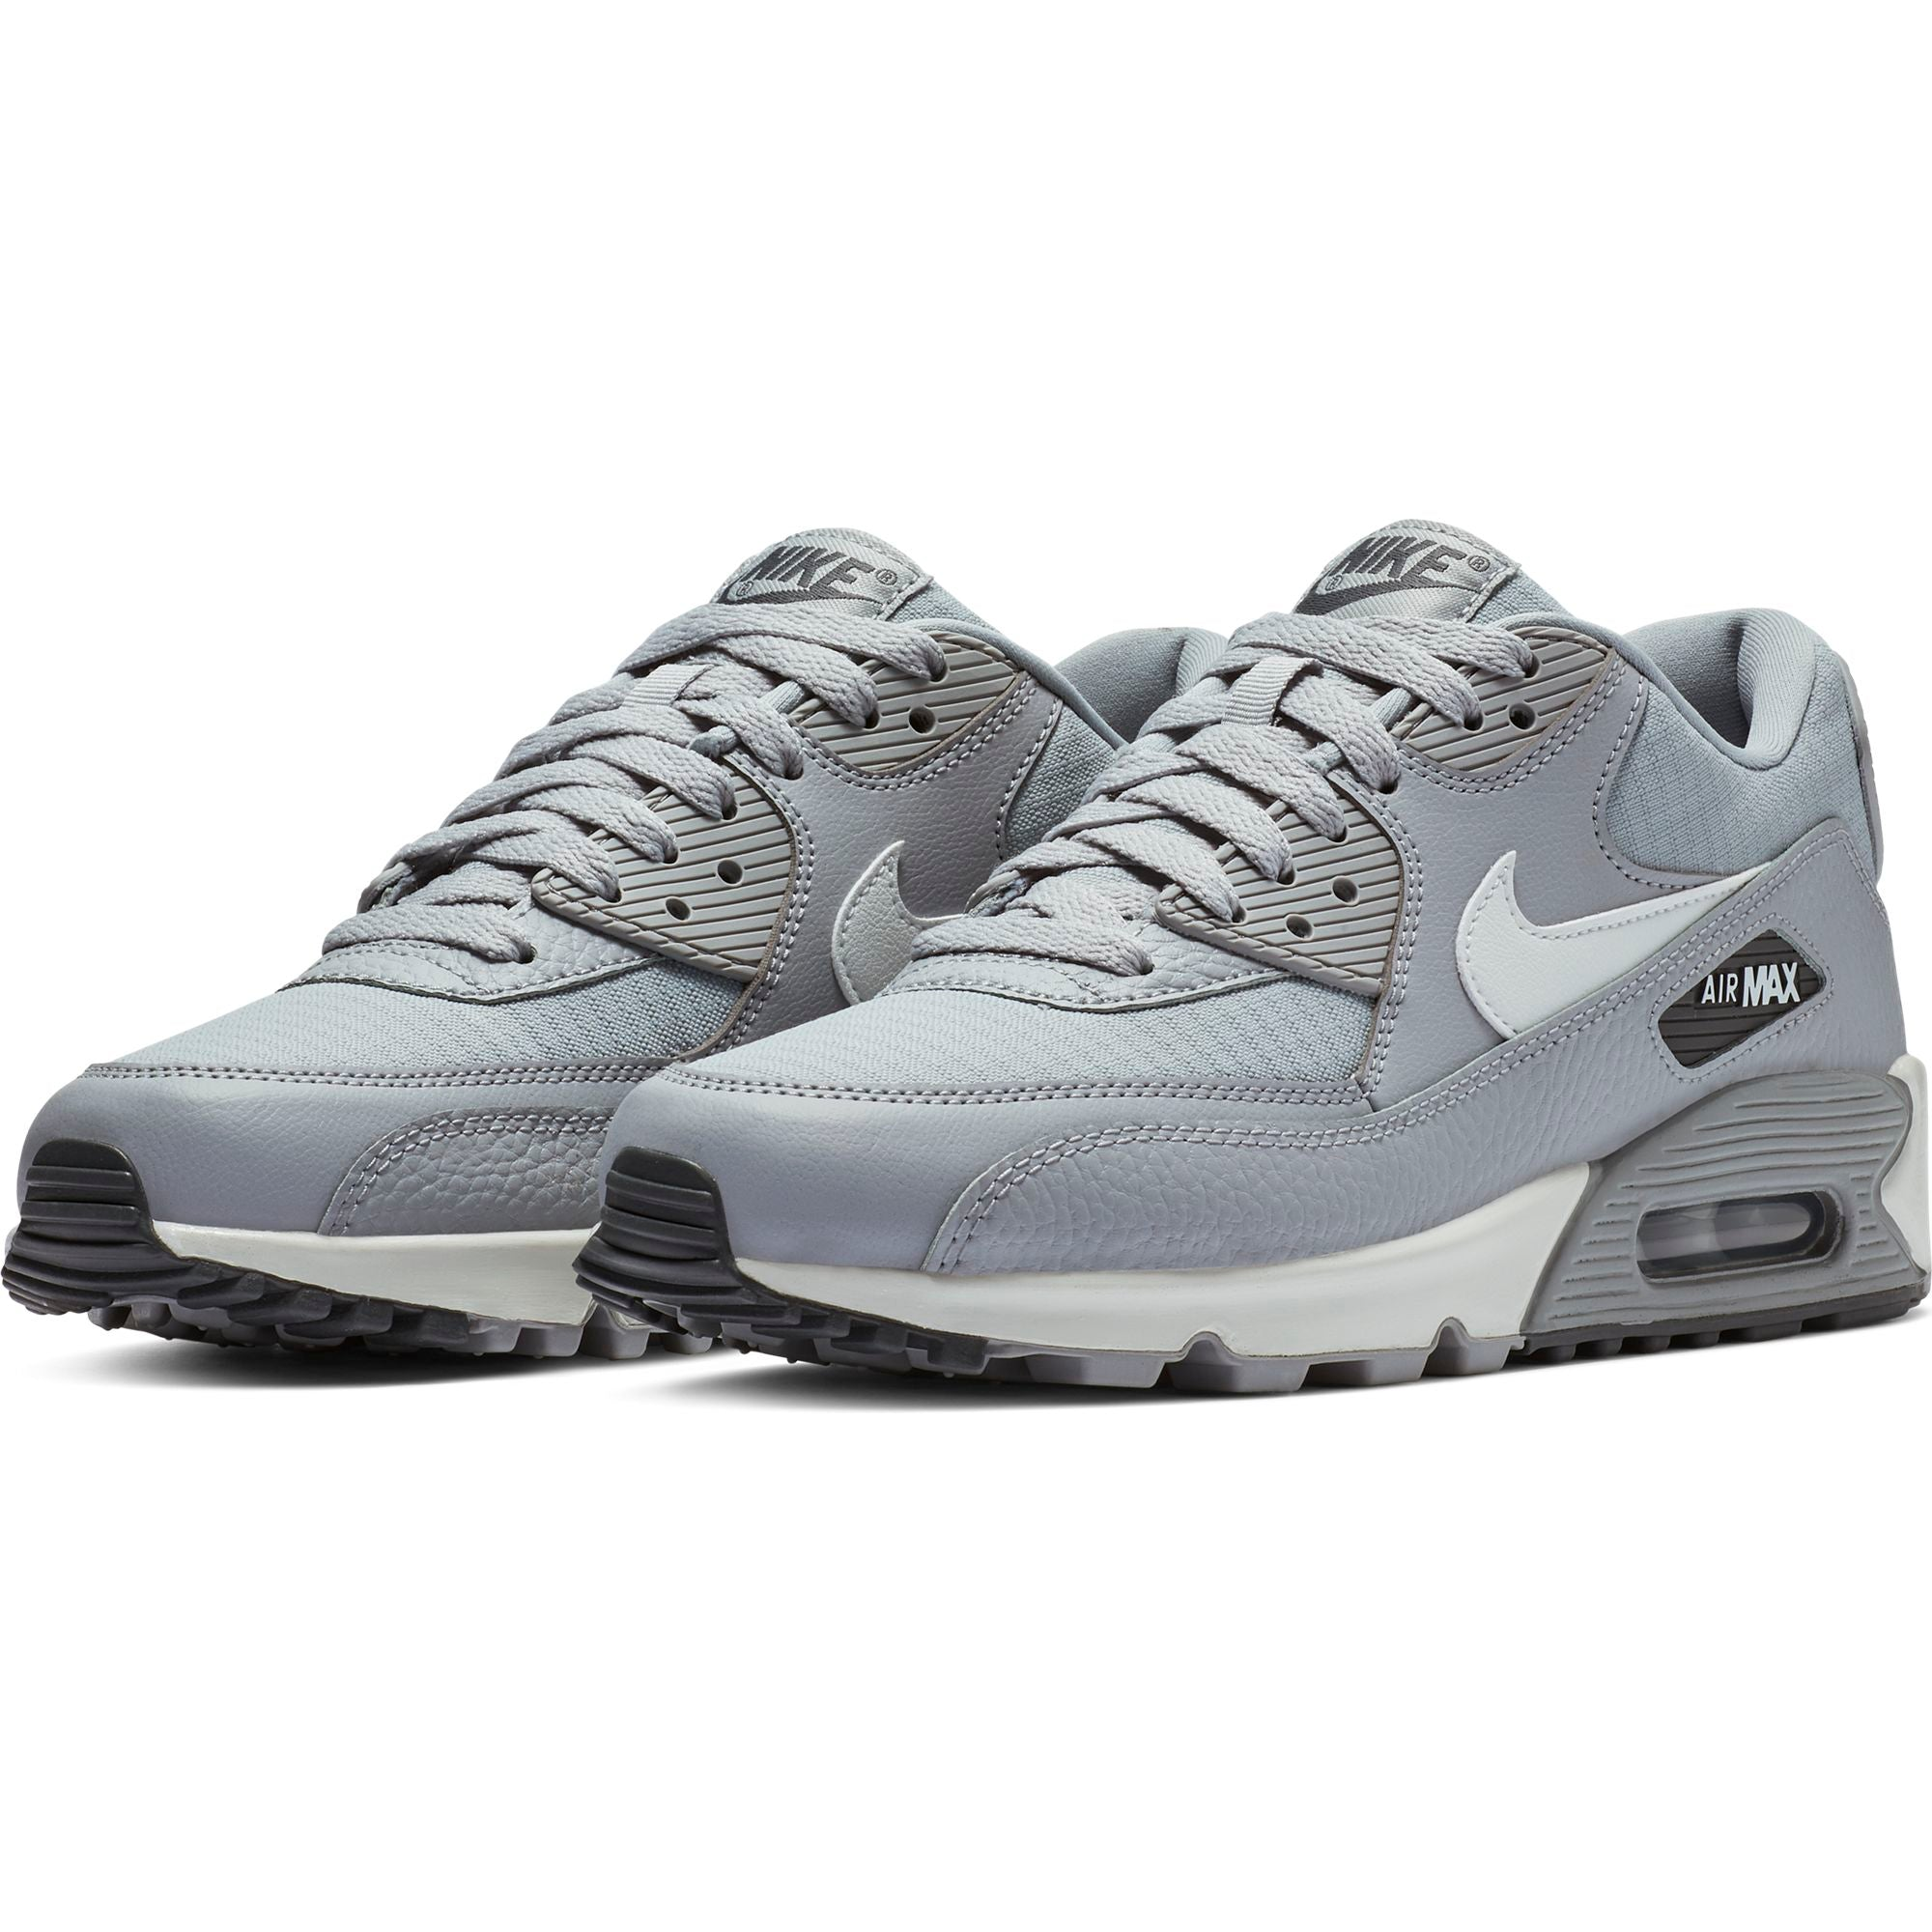 7ce51f3b Nike Women's Air Max 90 Sneakers, Wolf Grey/ Summit White-Dark Grey - First  Clothing